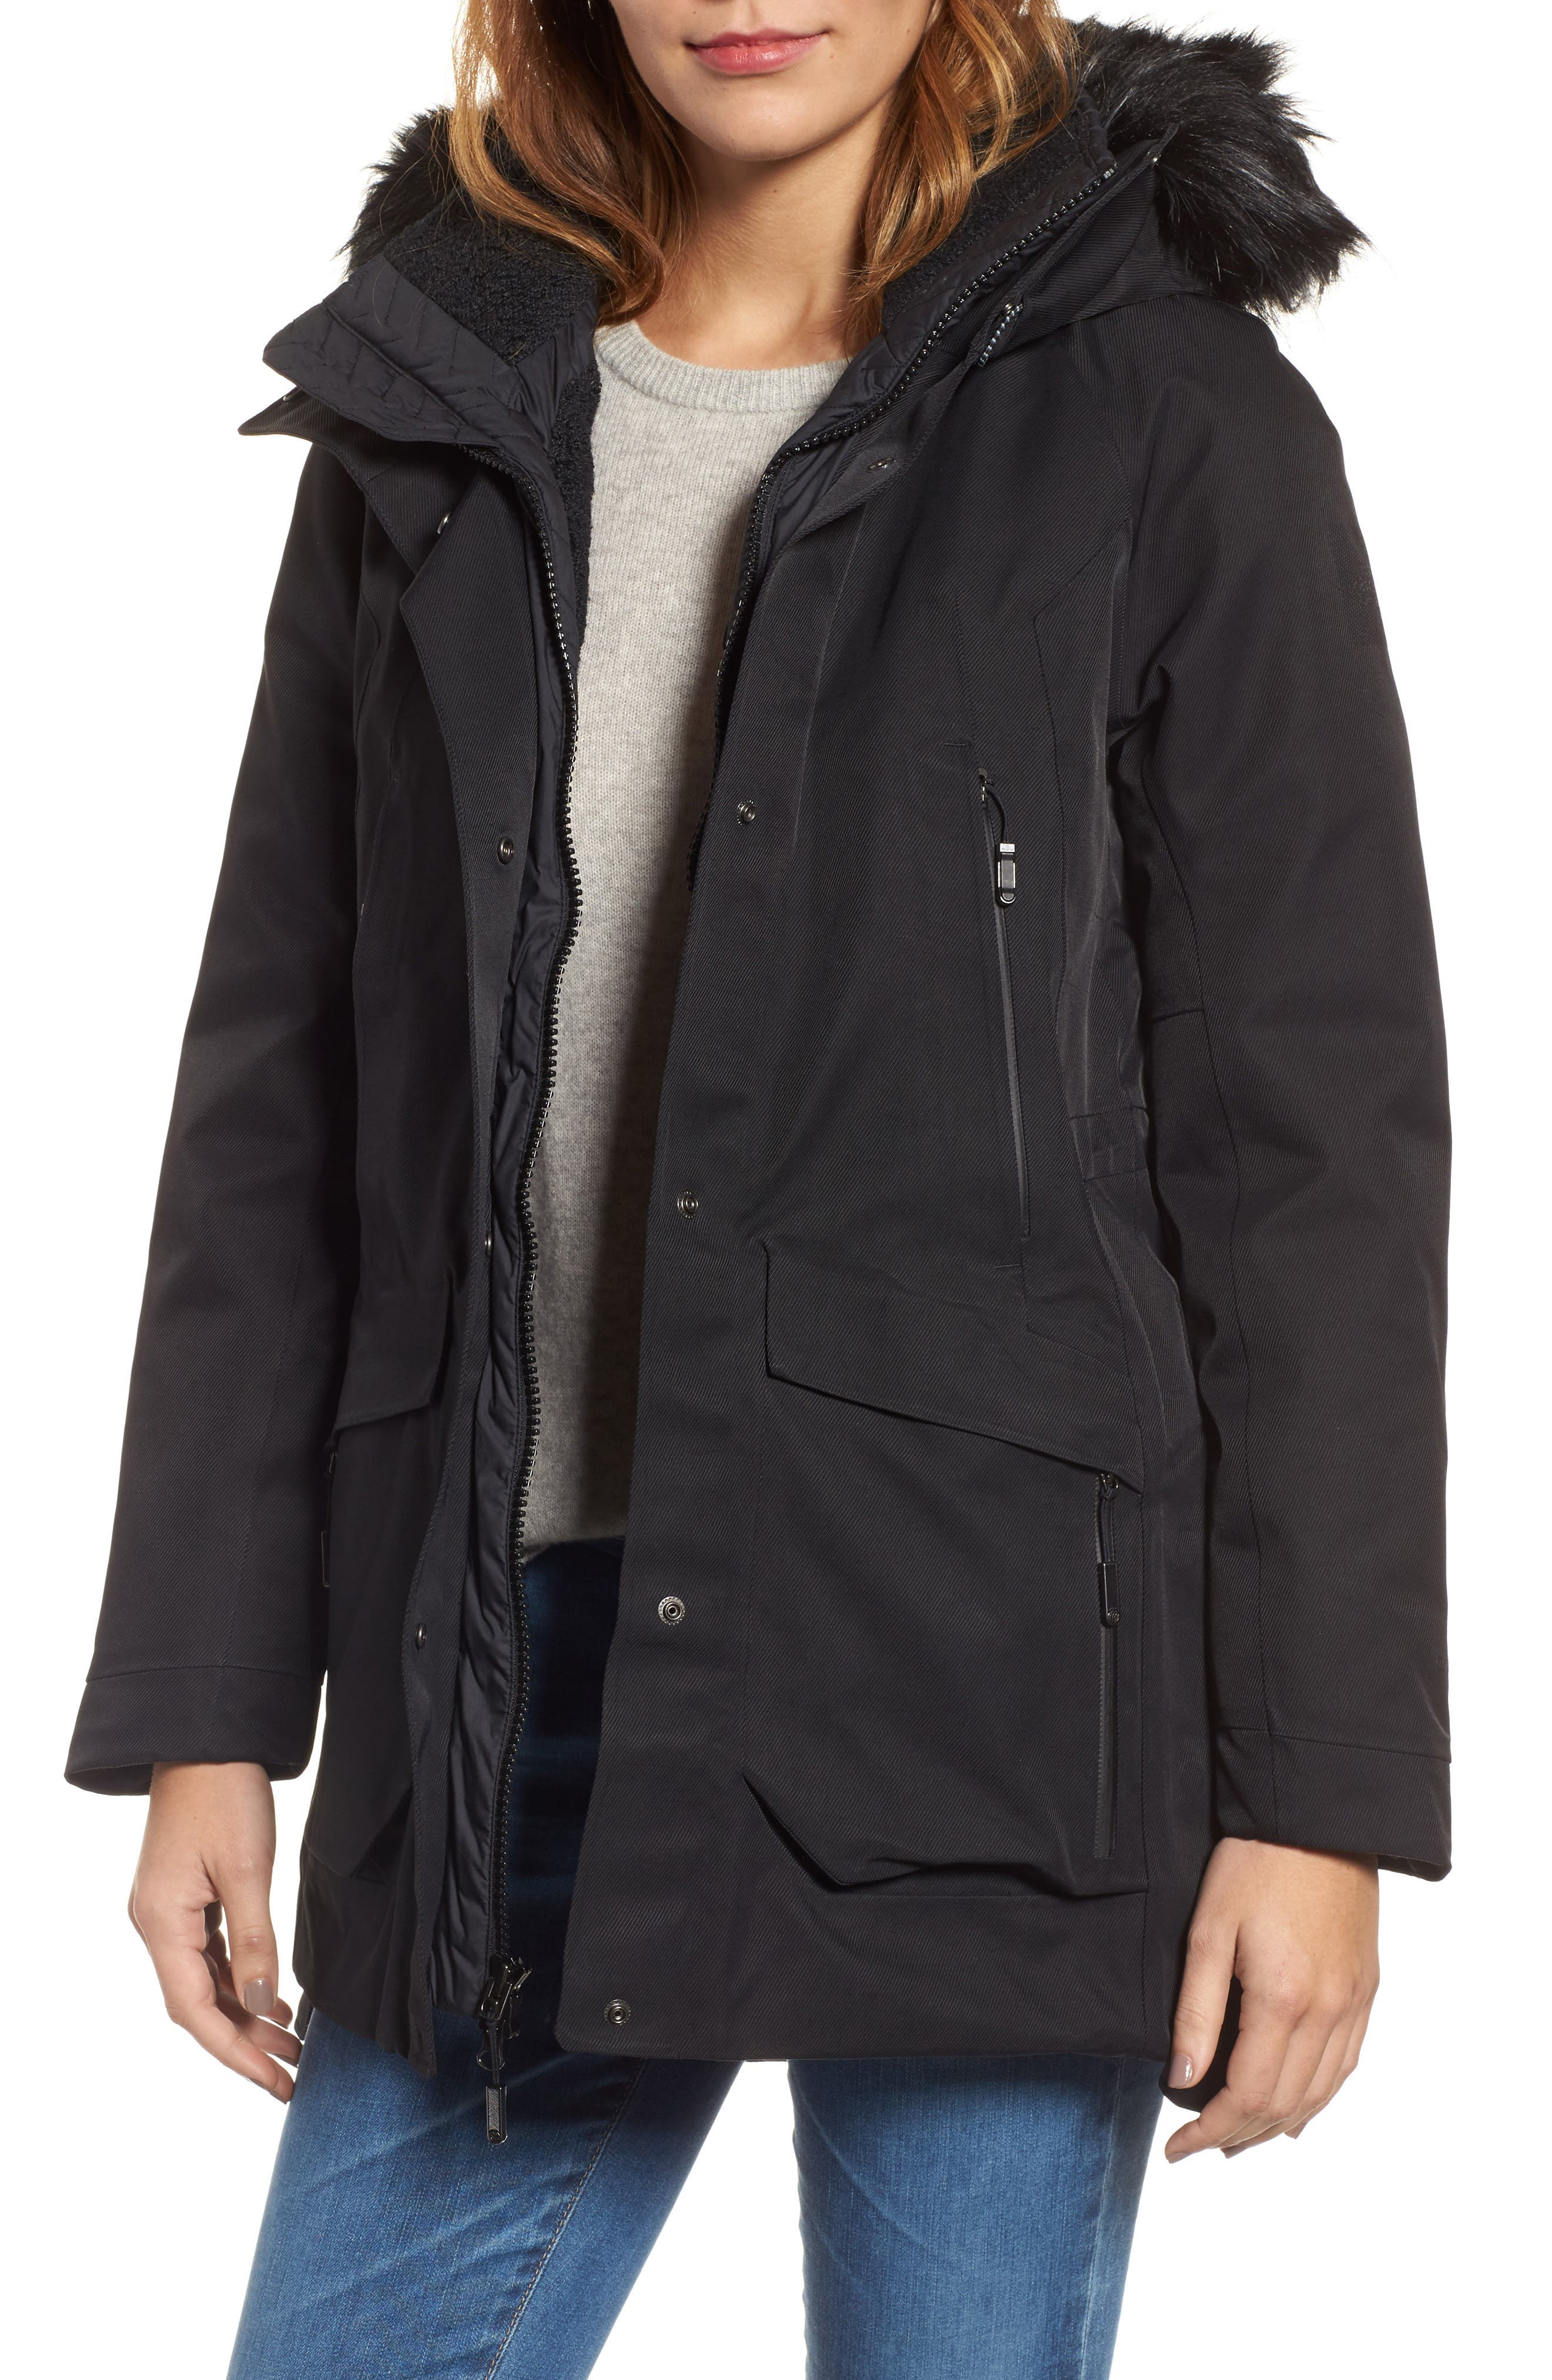 Cryos Gore-Tex<sup>®</sup> Tri-Climate PrimaLoft Gold Insulated Waterproof & Windproof Jacket,                             Main thumbnail 1, color,                             001